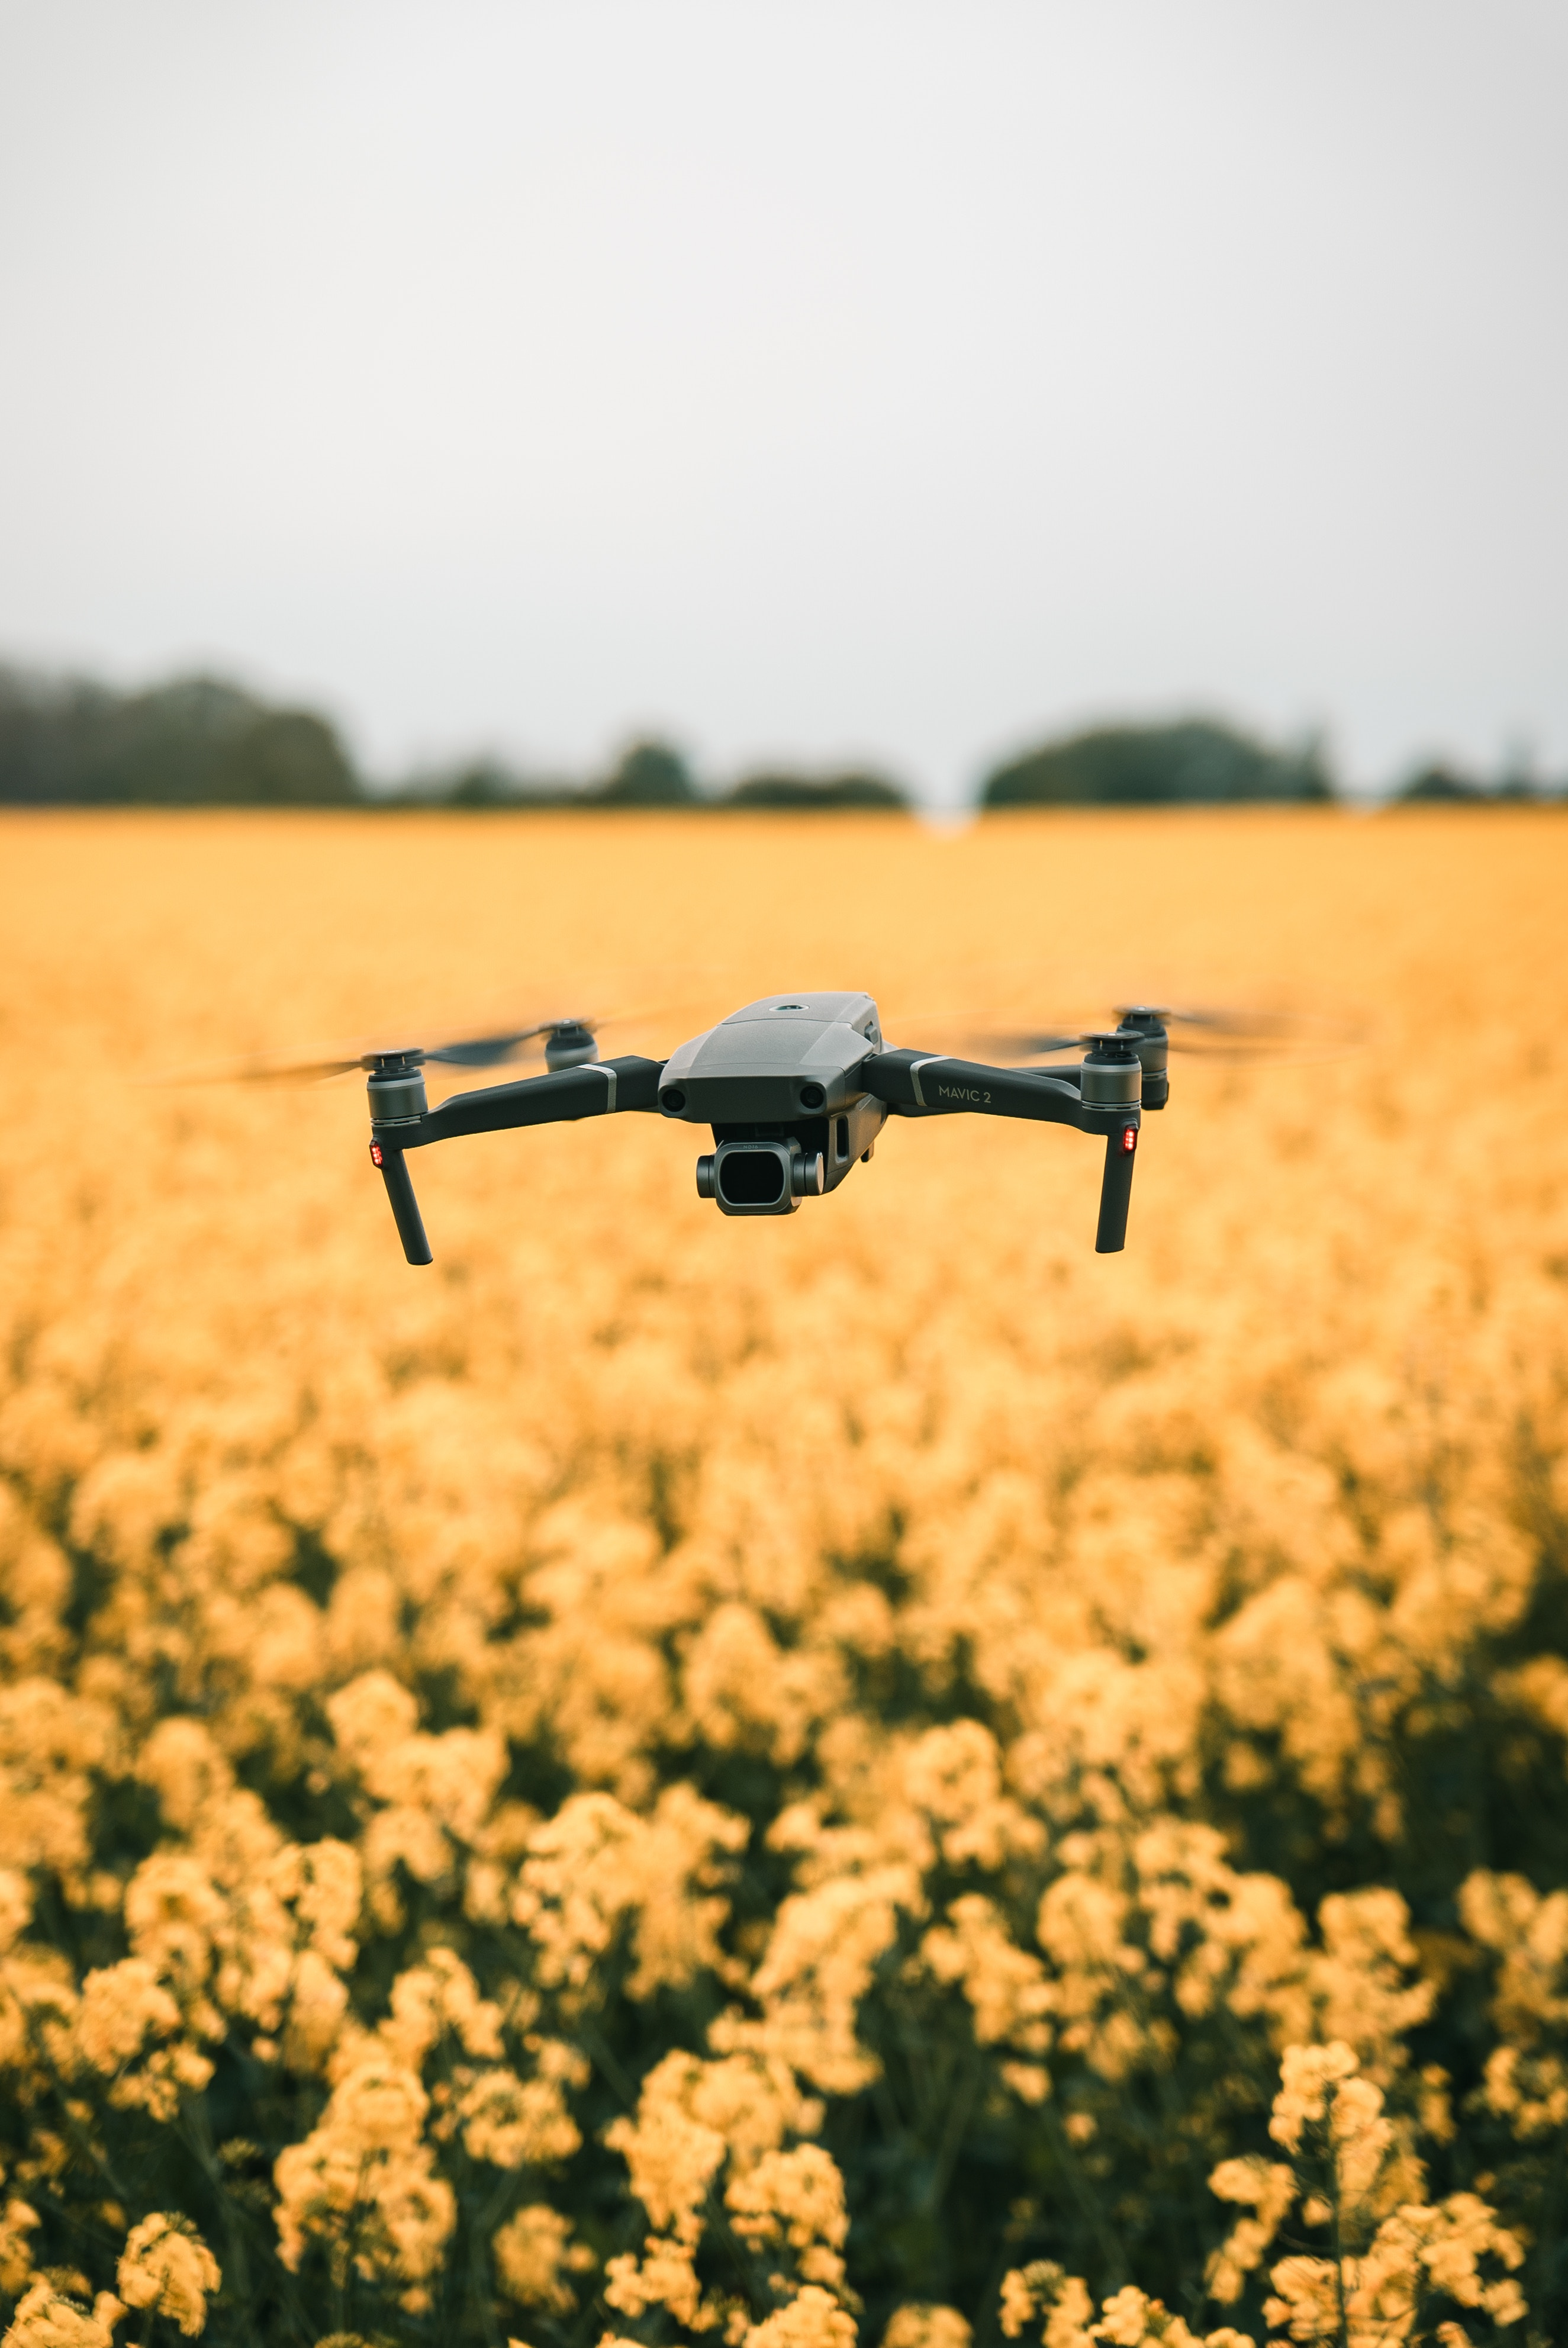 Popular Drone images for mobile phone